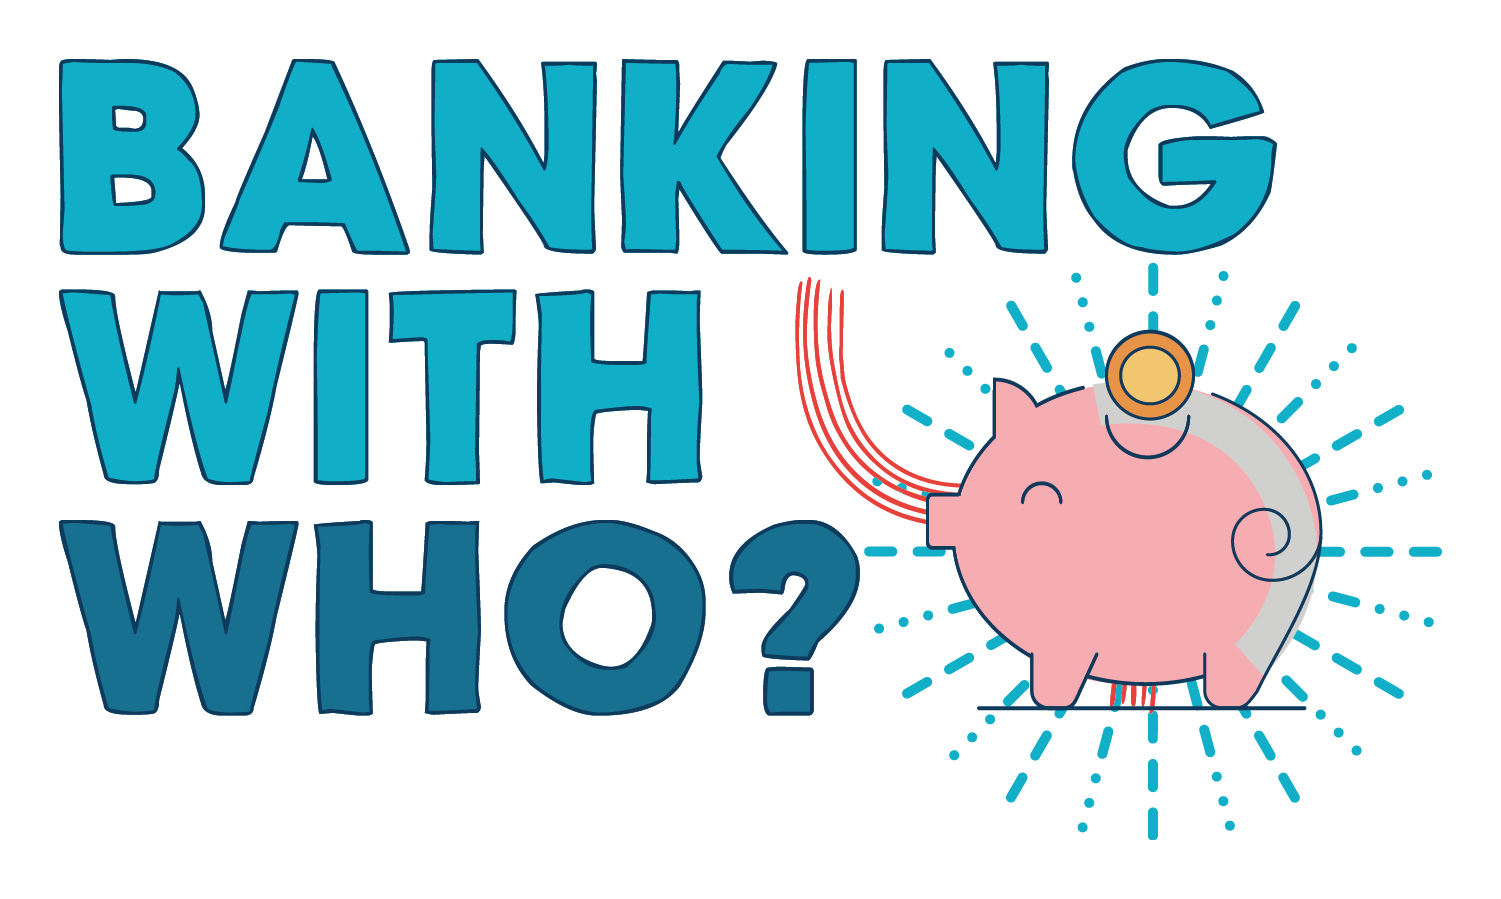 Banking with who? logo